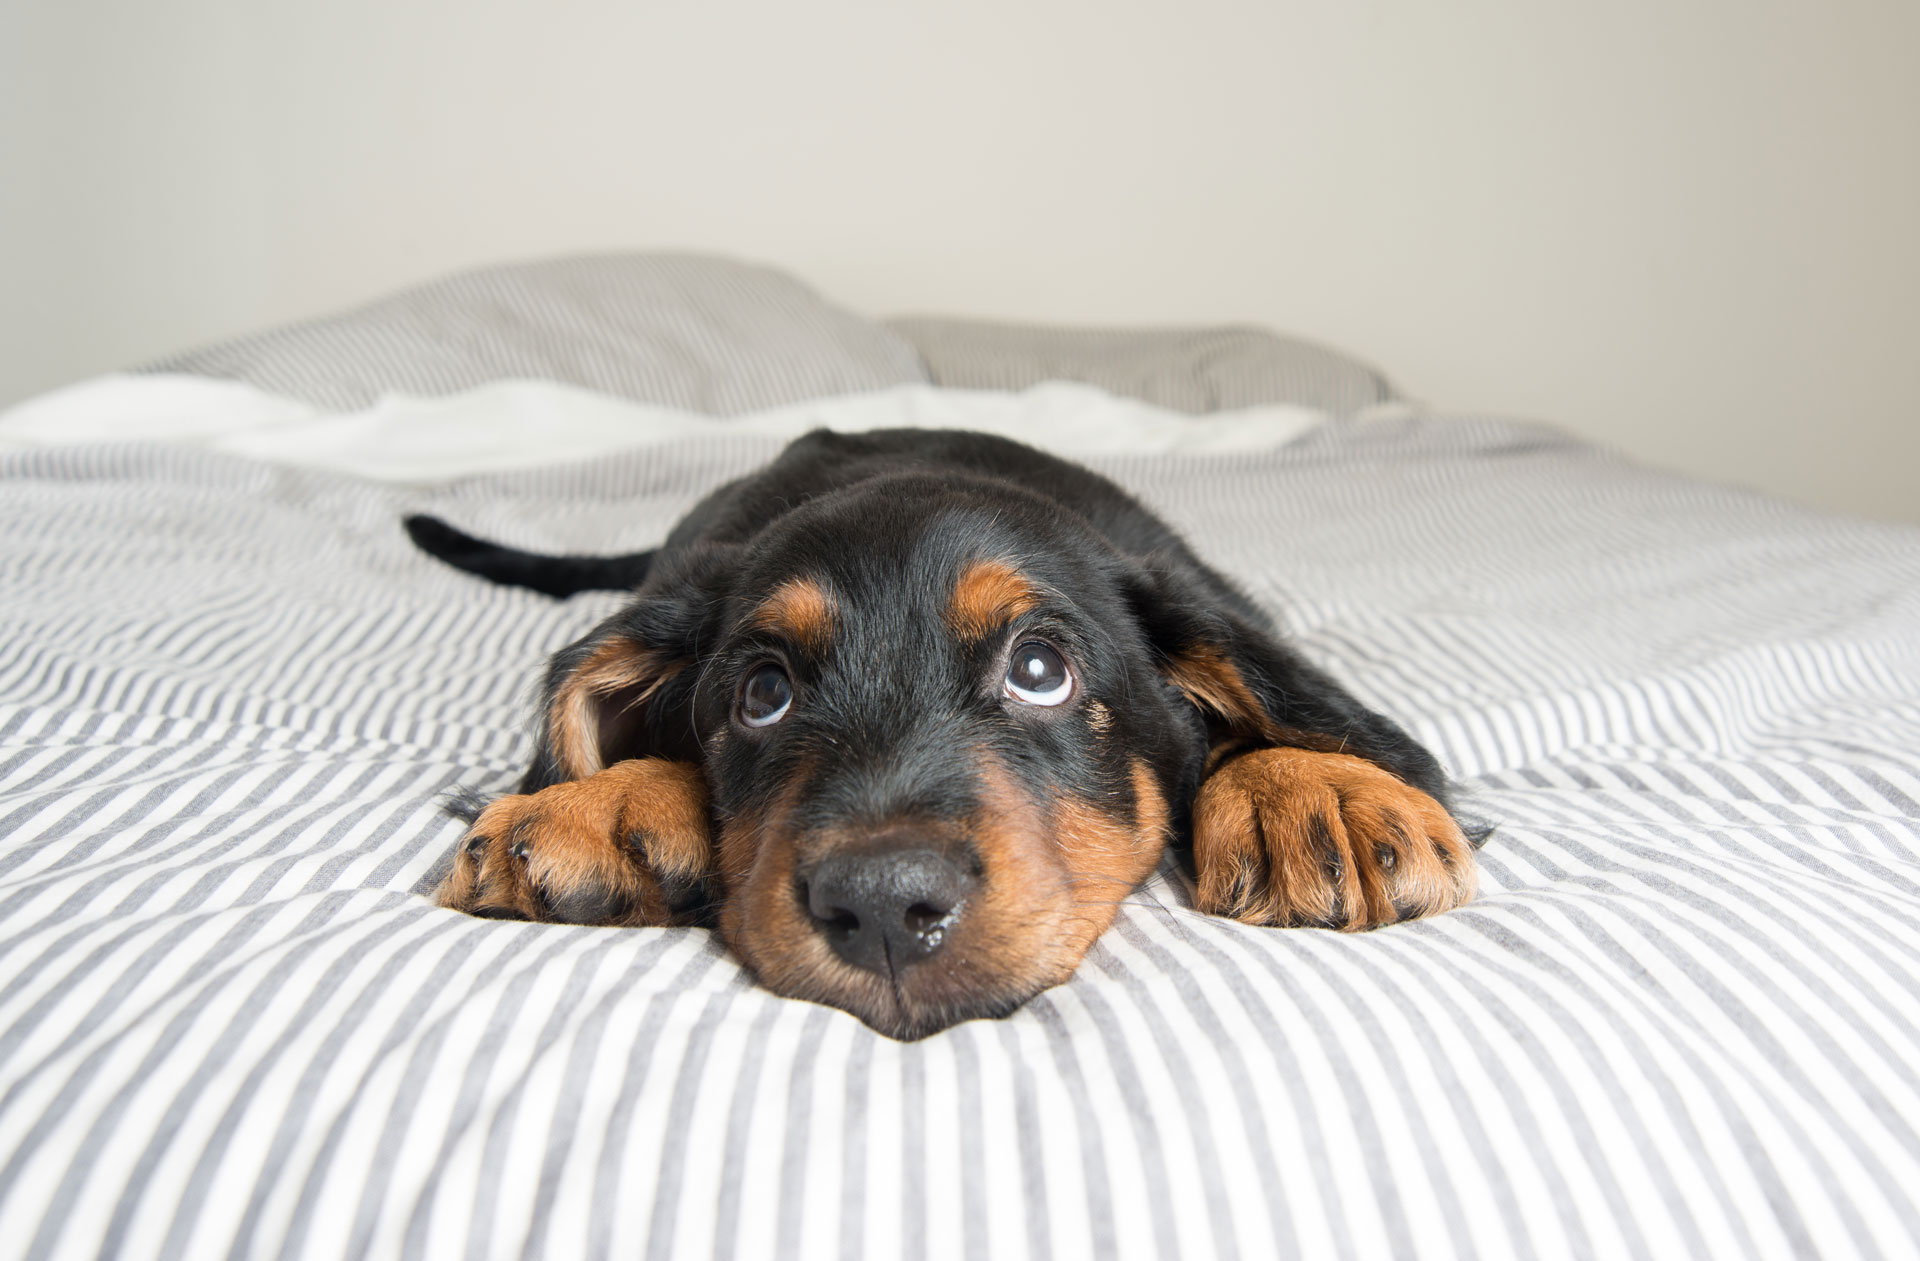 Cute Rottweiler Mix Puppy Sleeping on Striped White and Gray Sheets on Human Bed Looking at Camera